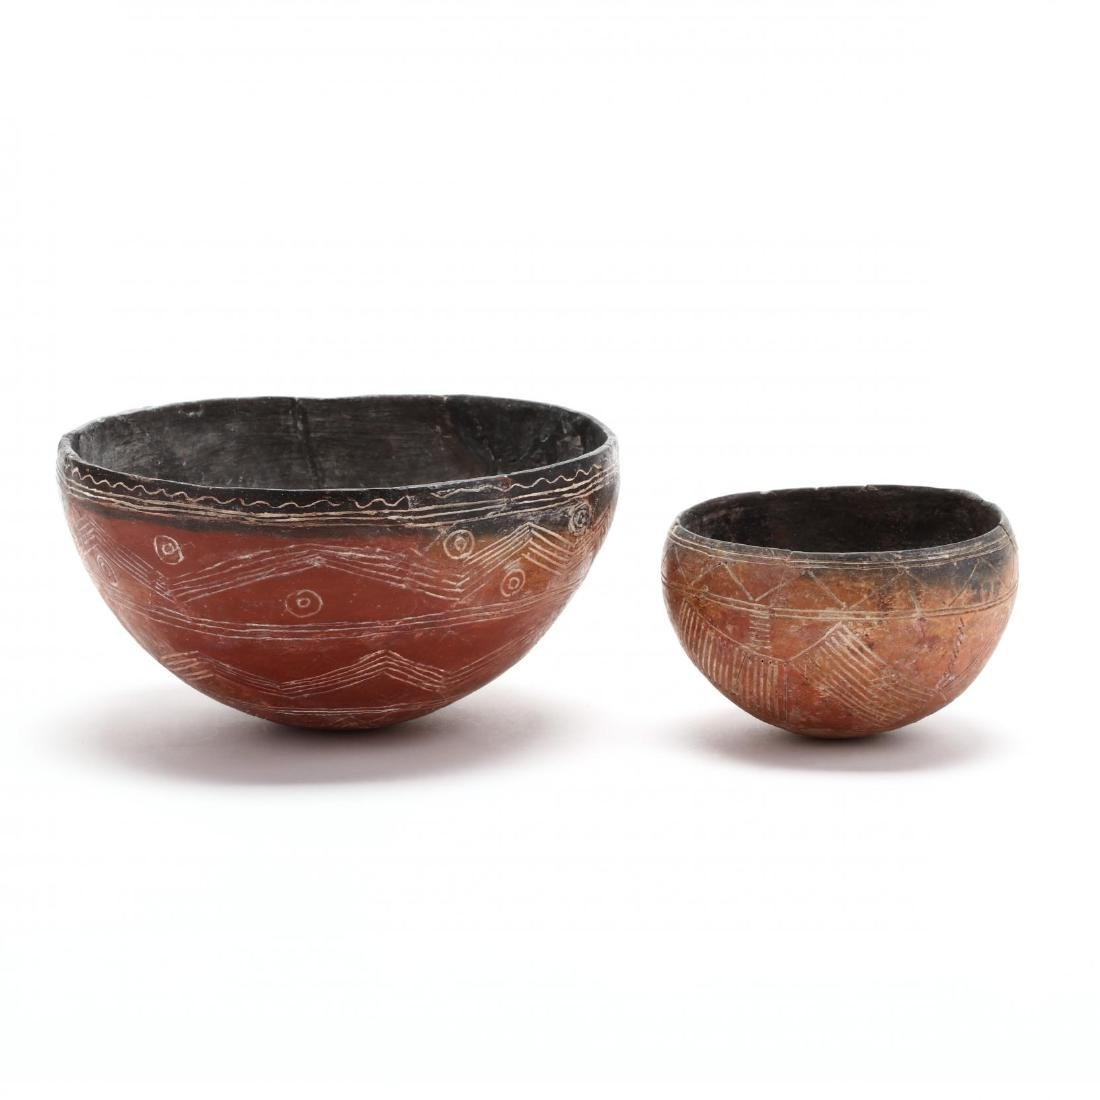 Two Cypriot Early Bronze Age Polished Red Ware Bowls